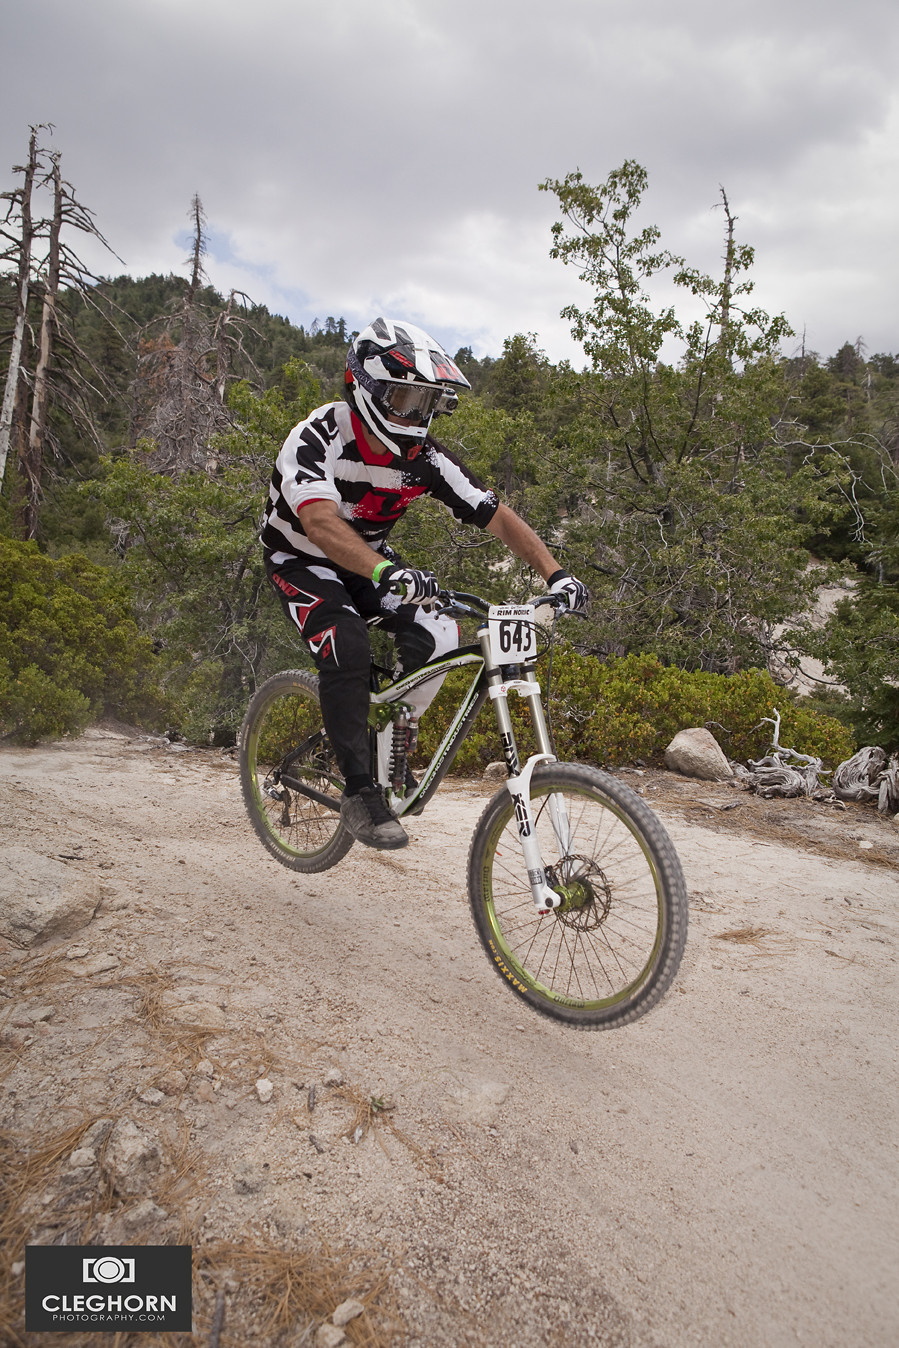 MG 0497 - Cleghorn Photography - Mountain Biking Pictures - Vital MTB